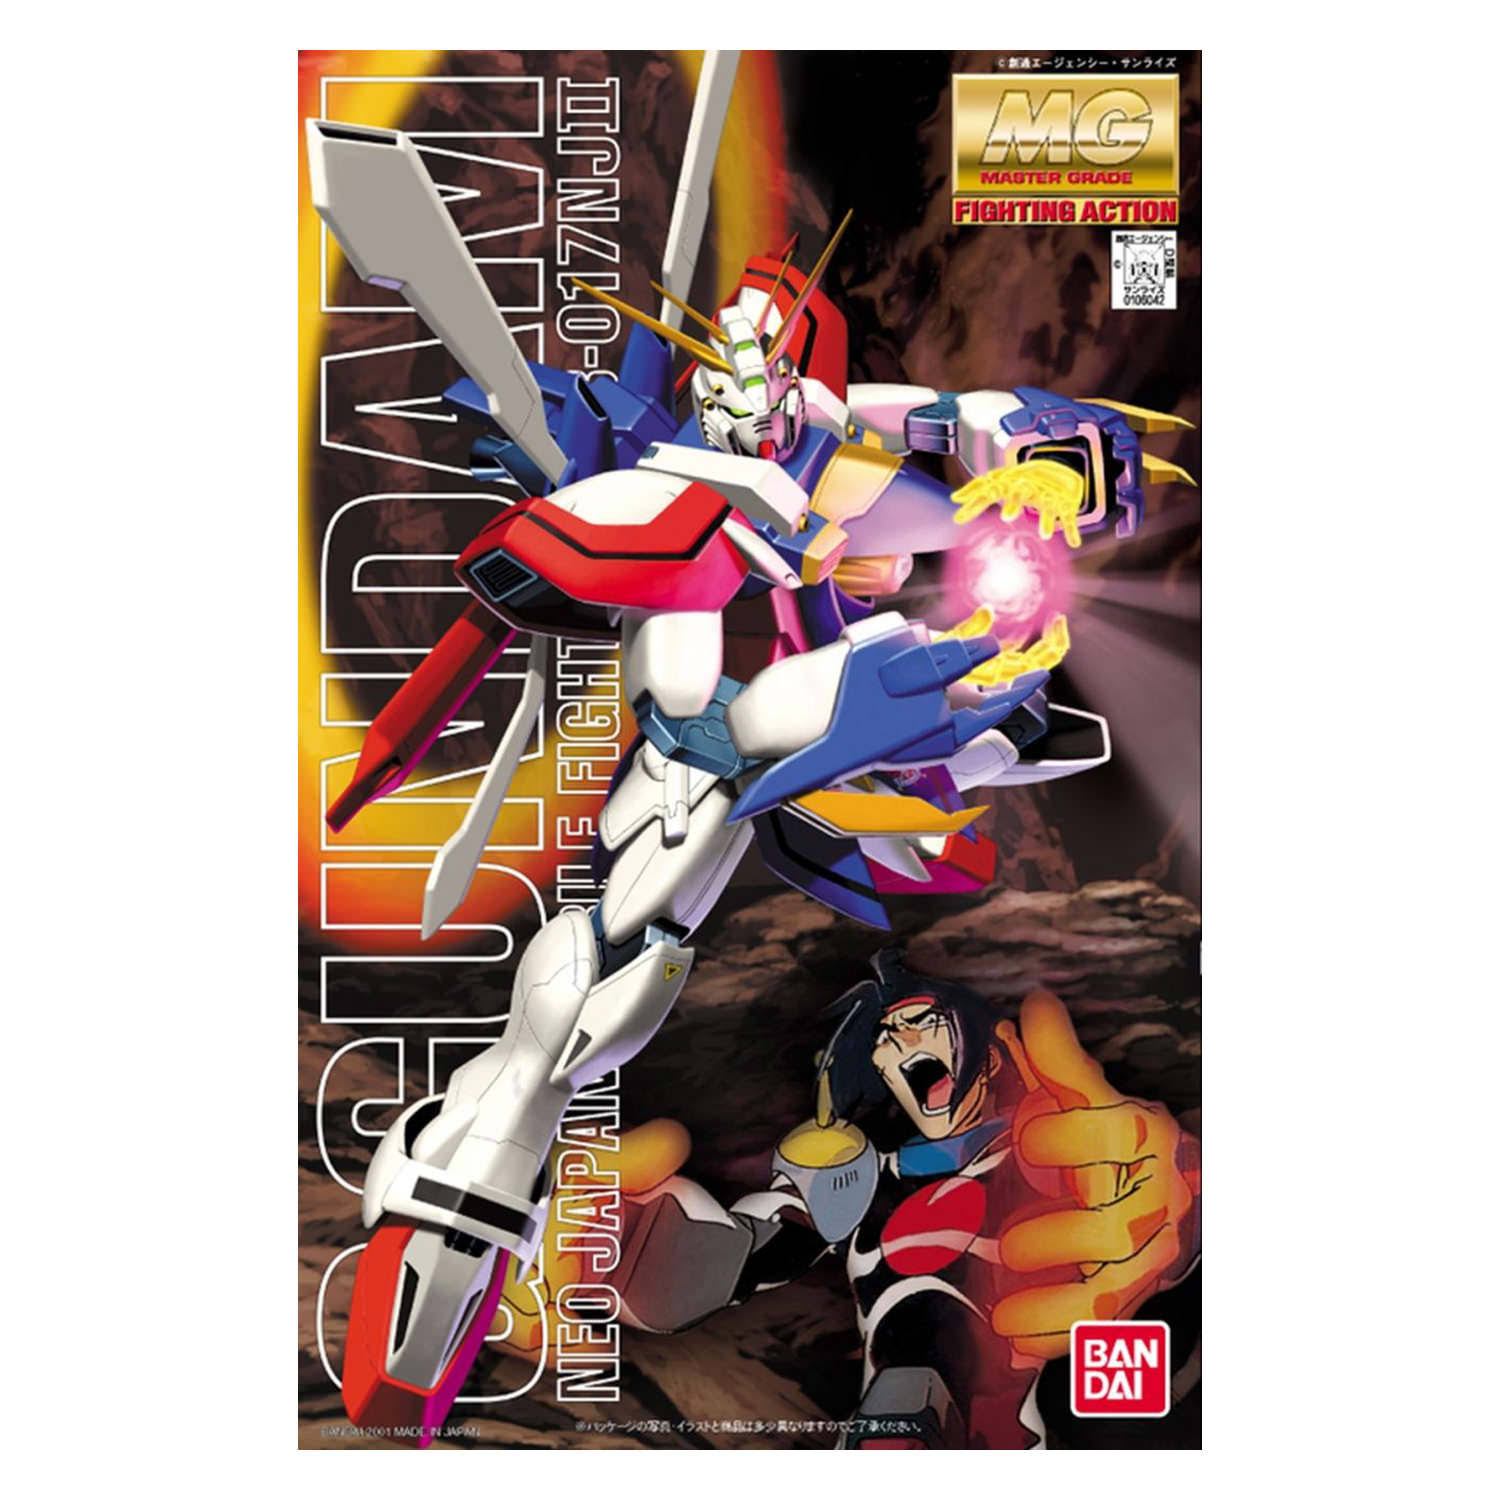 Bandai Gundam 106042 Plastic Snap Model Figure Kit - God Gundam, Scale 1/100